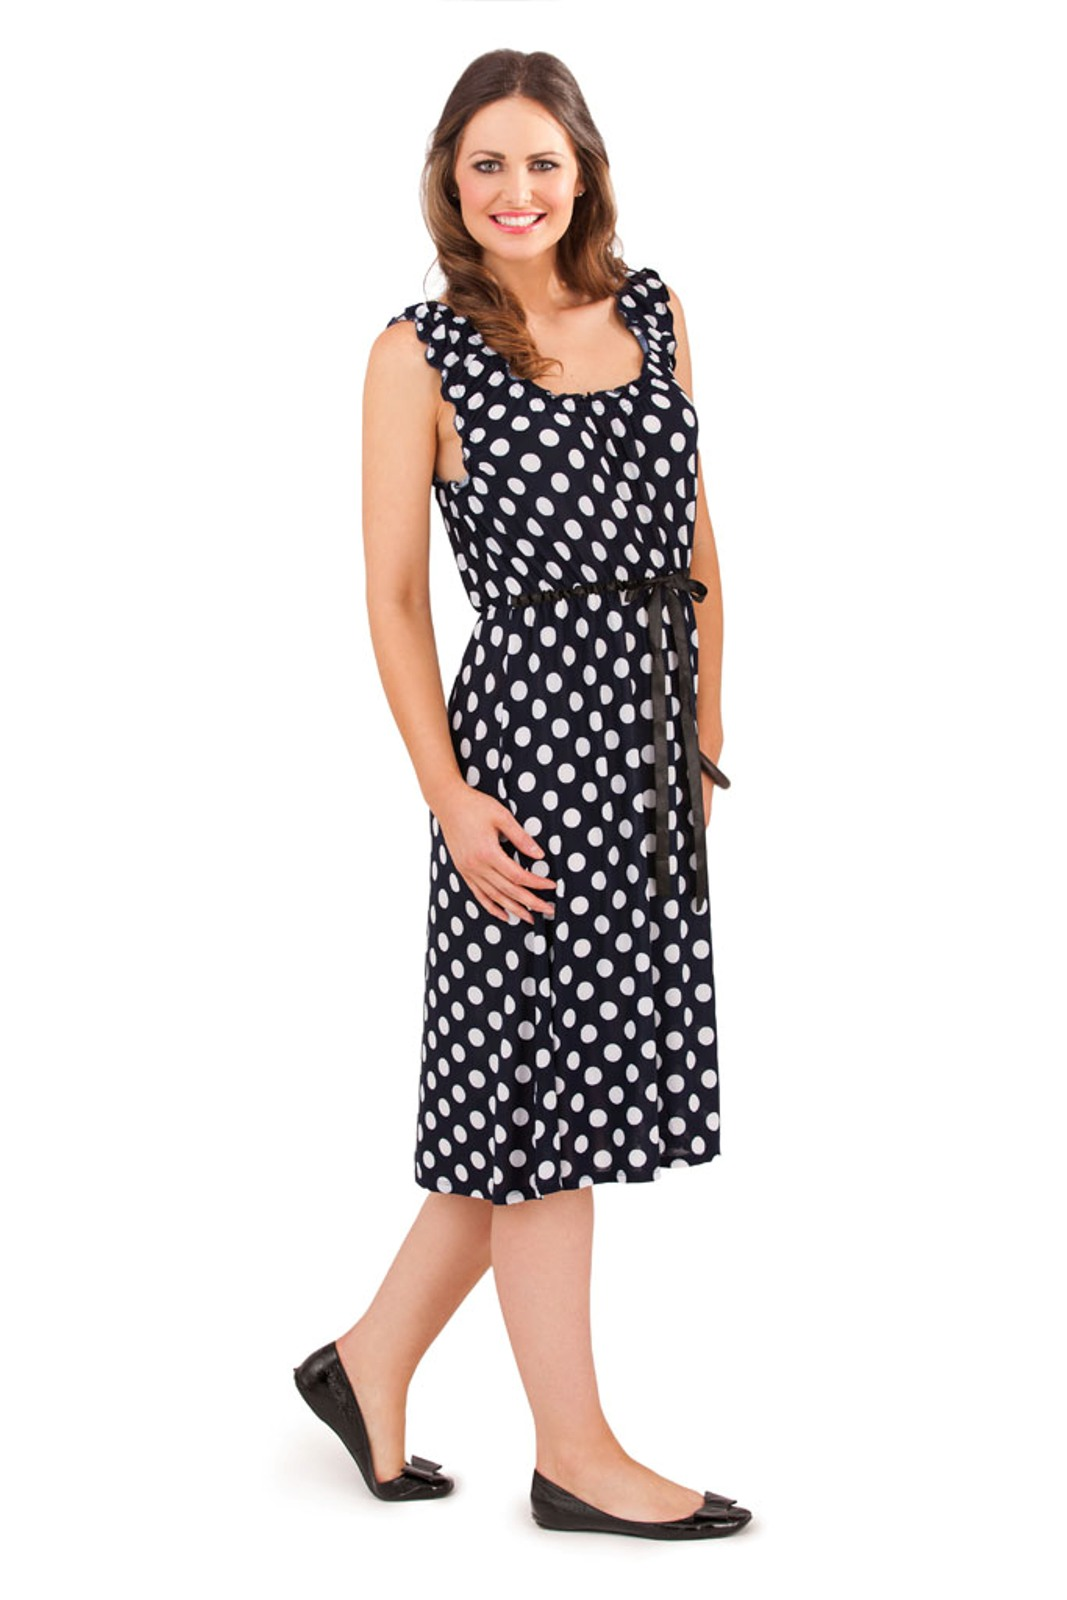 The Sports model wore a pretty long-sleeved s polka-dot dress and had large gold earrings for a glam mommy flip13bubble.tk dress, with a key-hole in the front which can be zipped up or down, was black with white polka dots all over it.